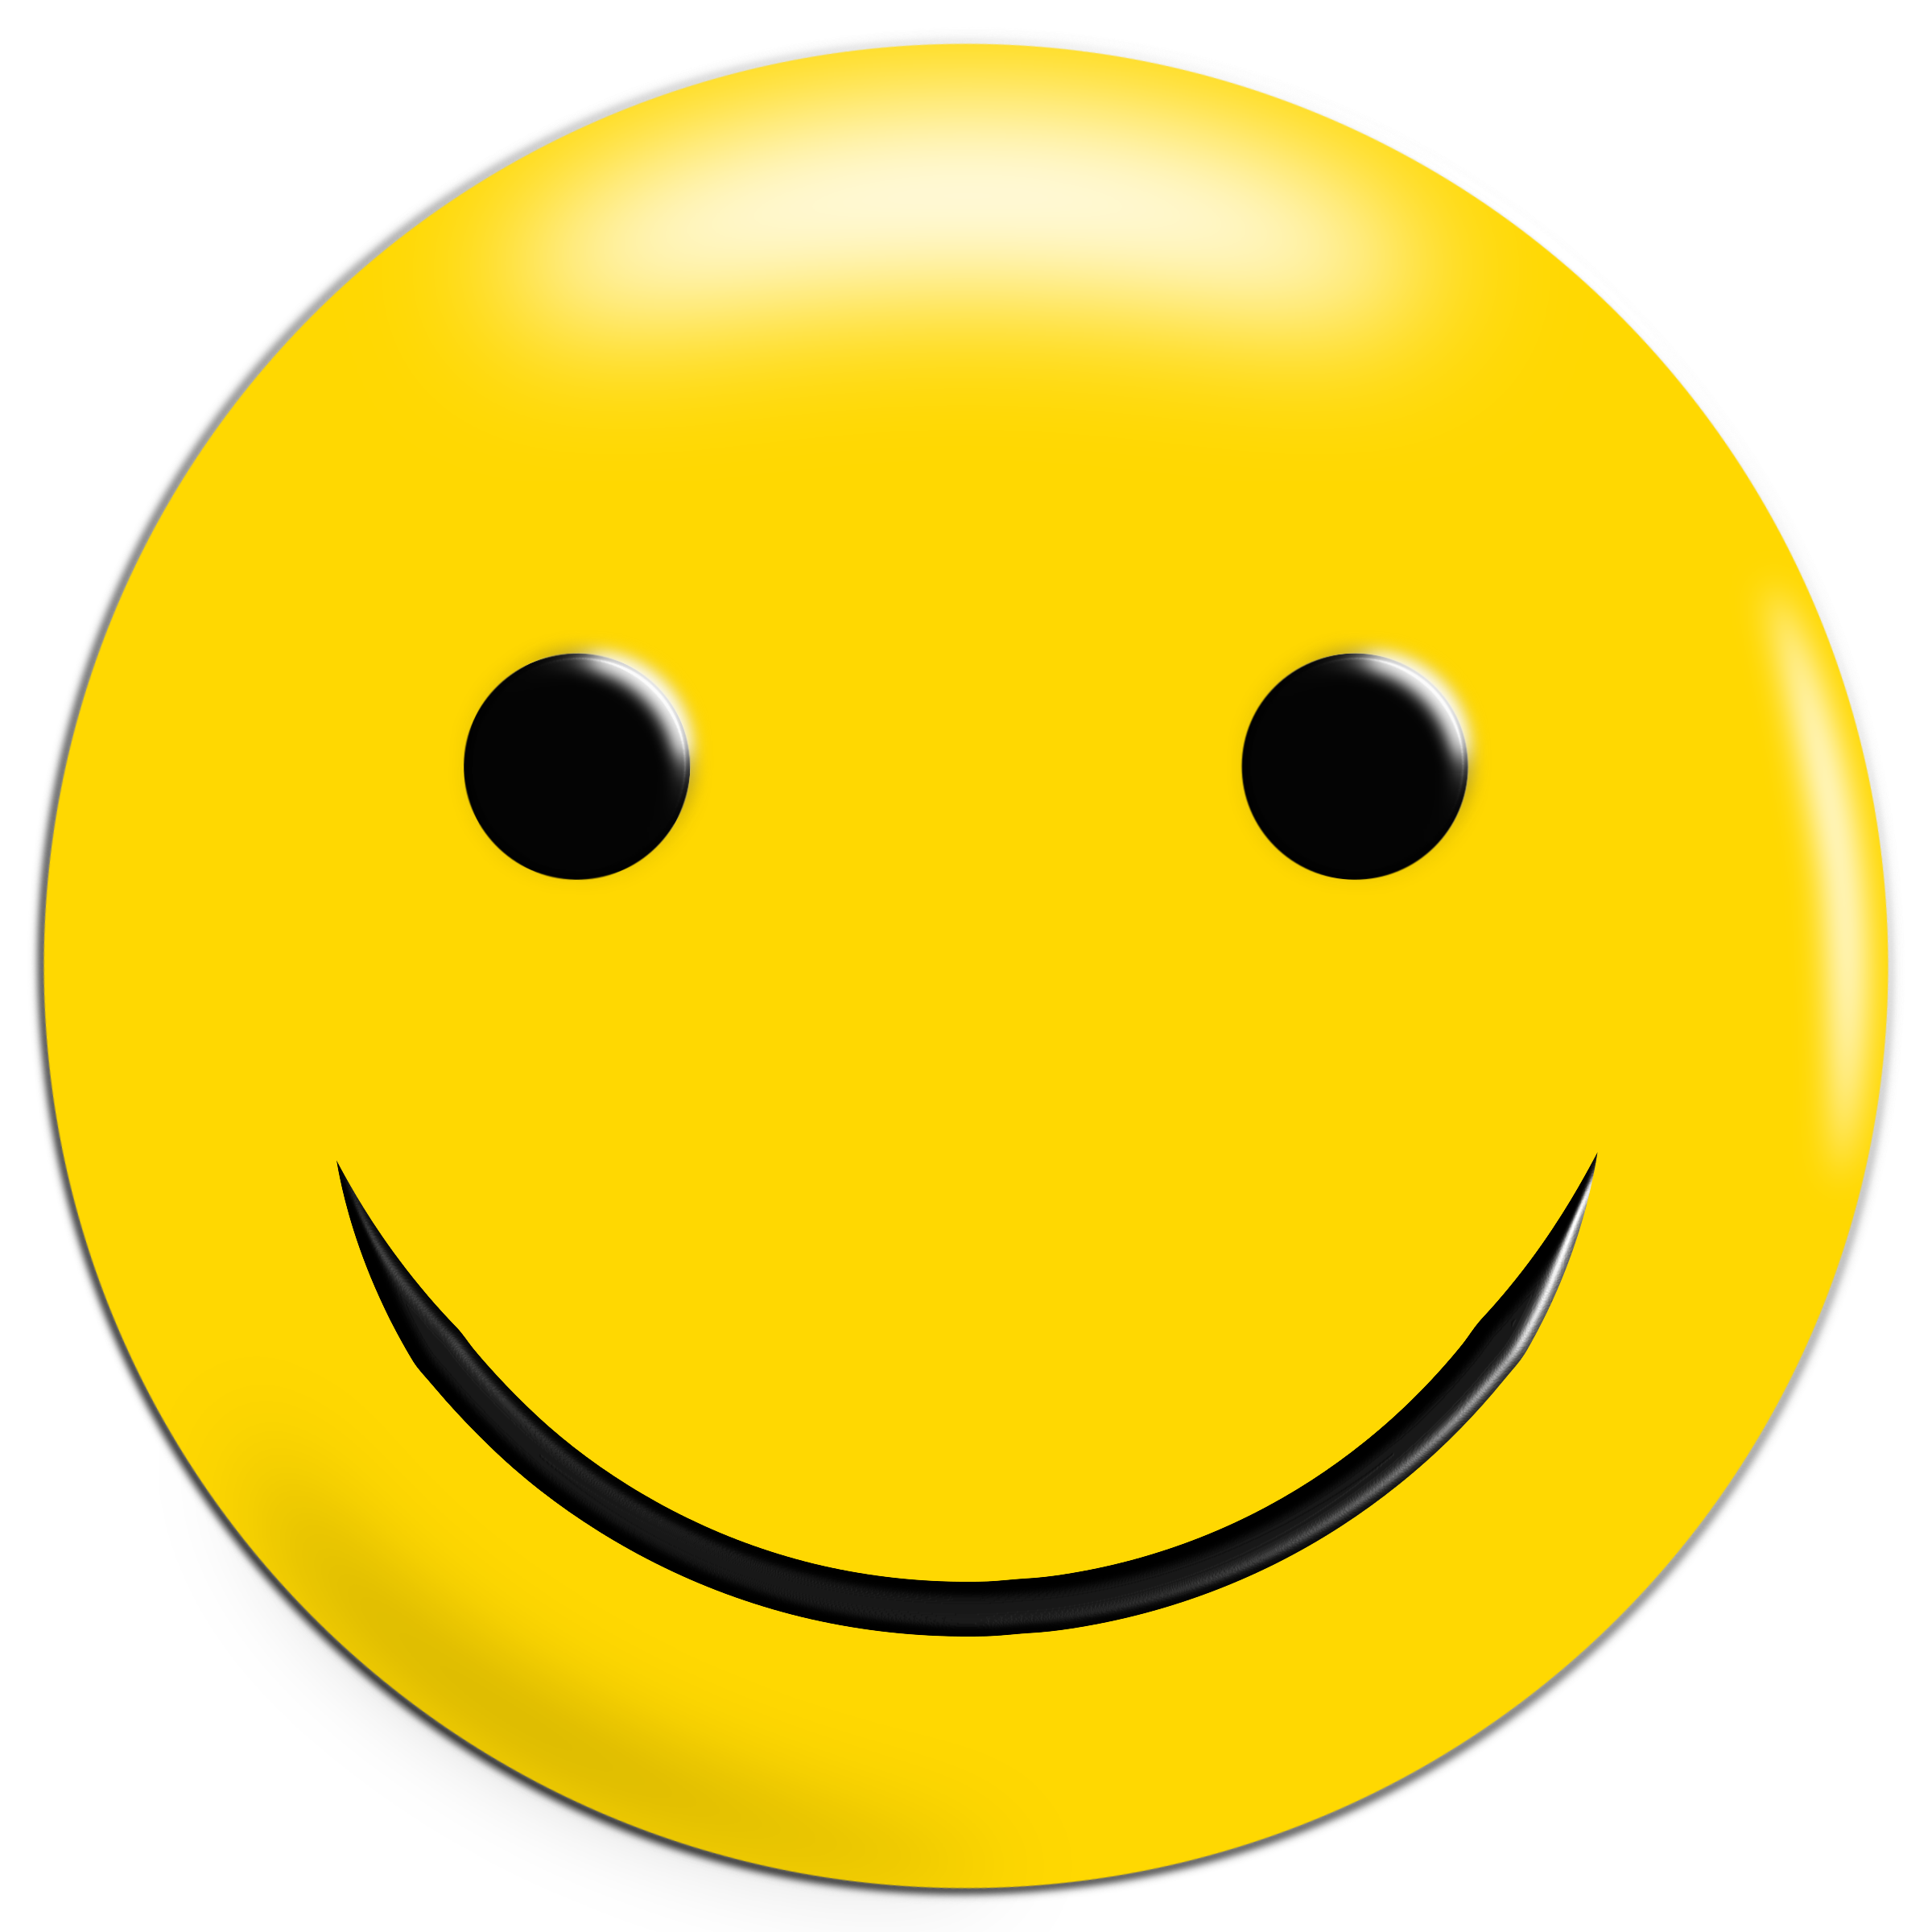 Smiley face clip art simple. Yellow icons png free